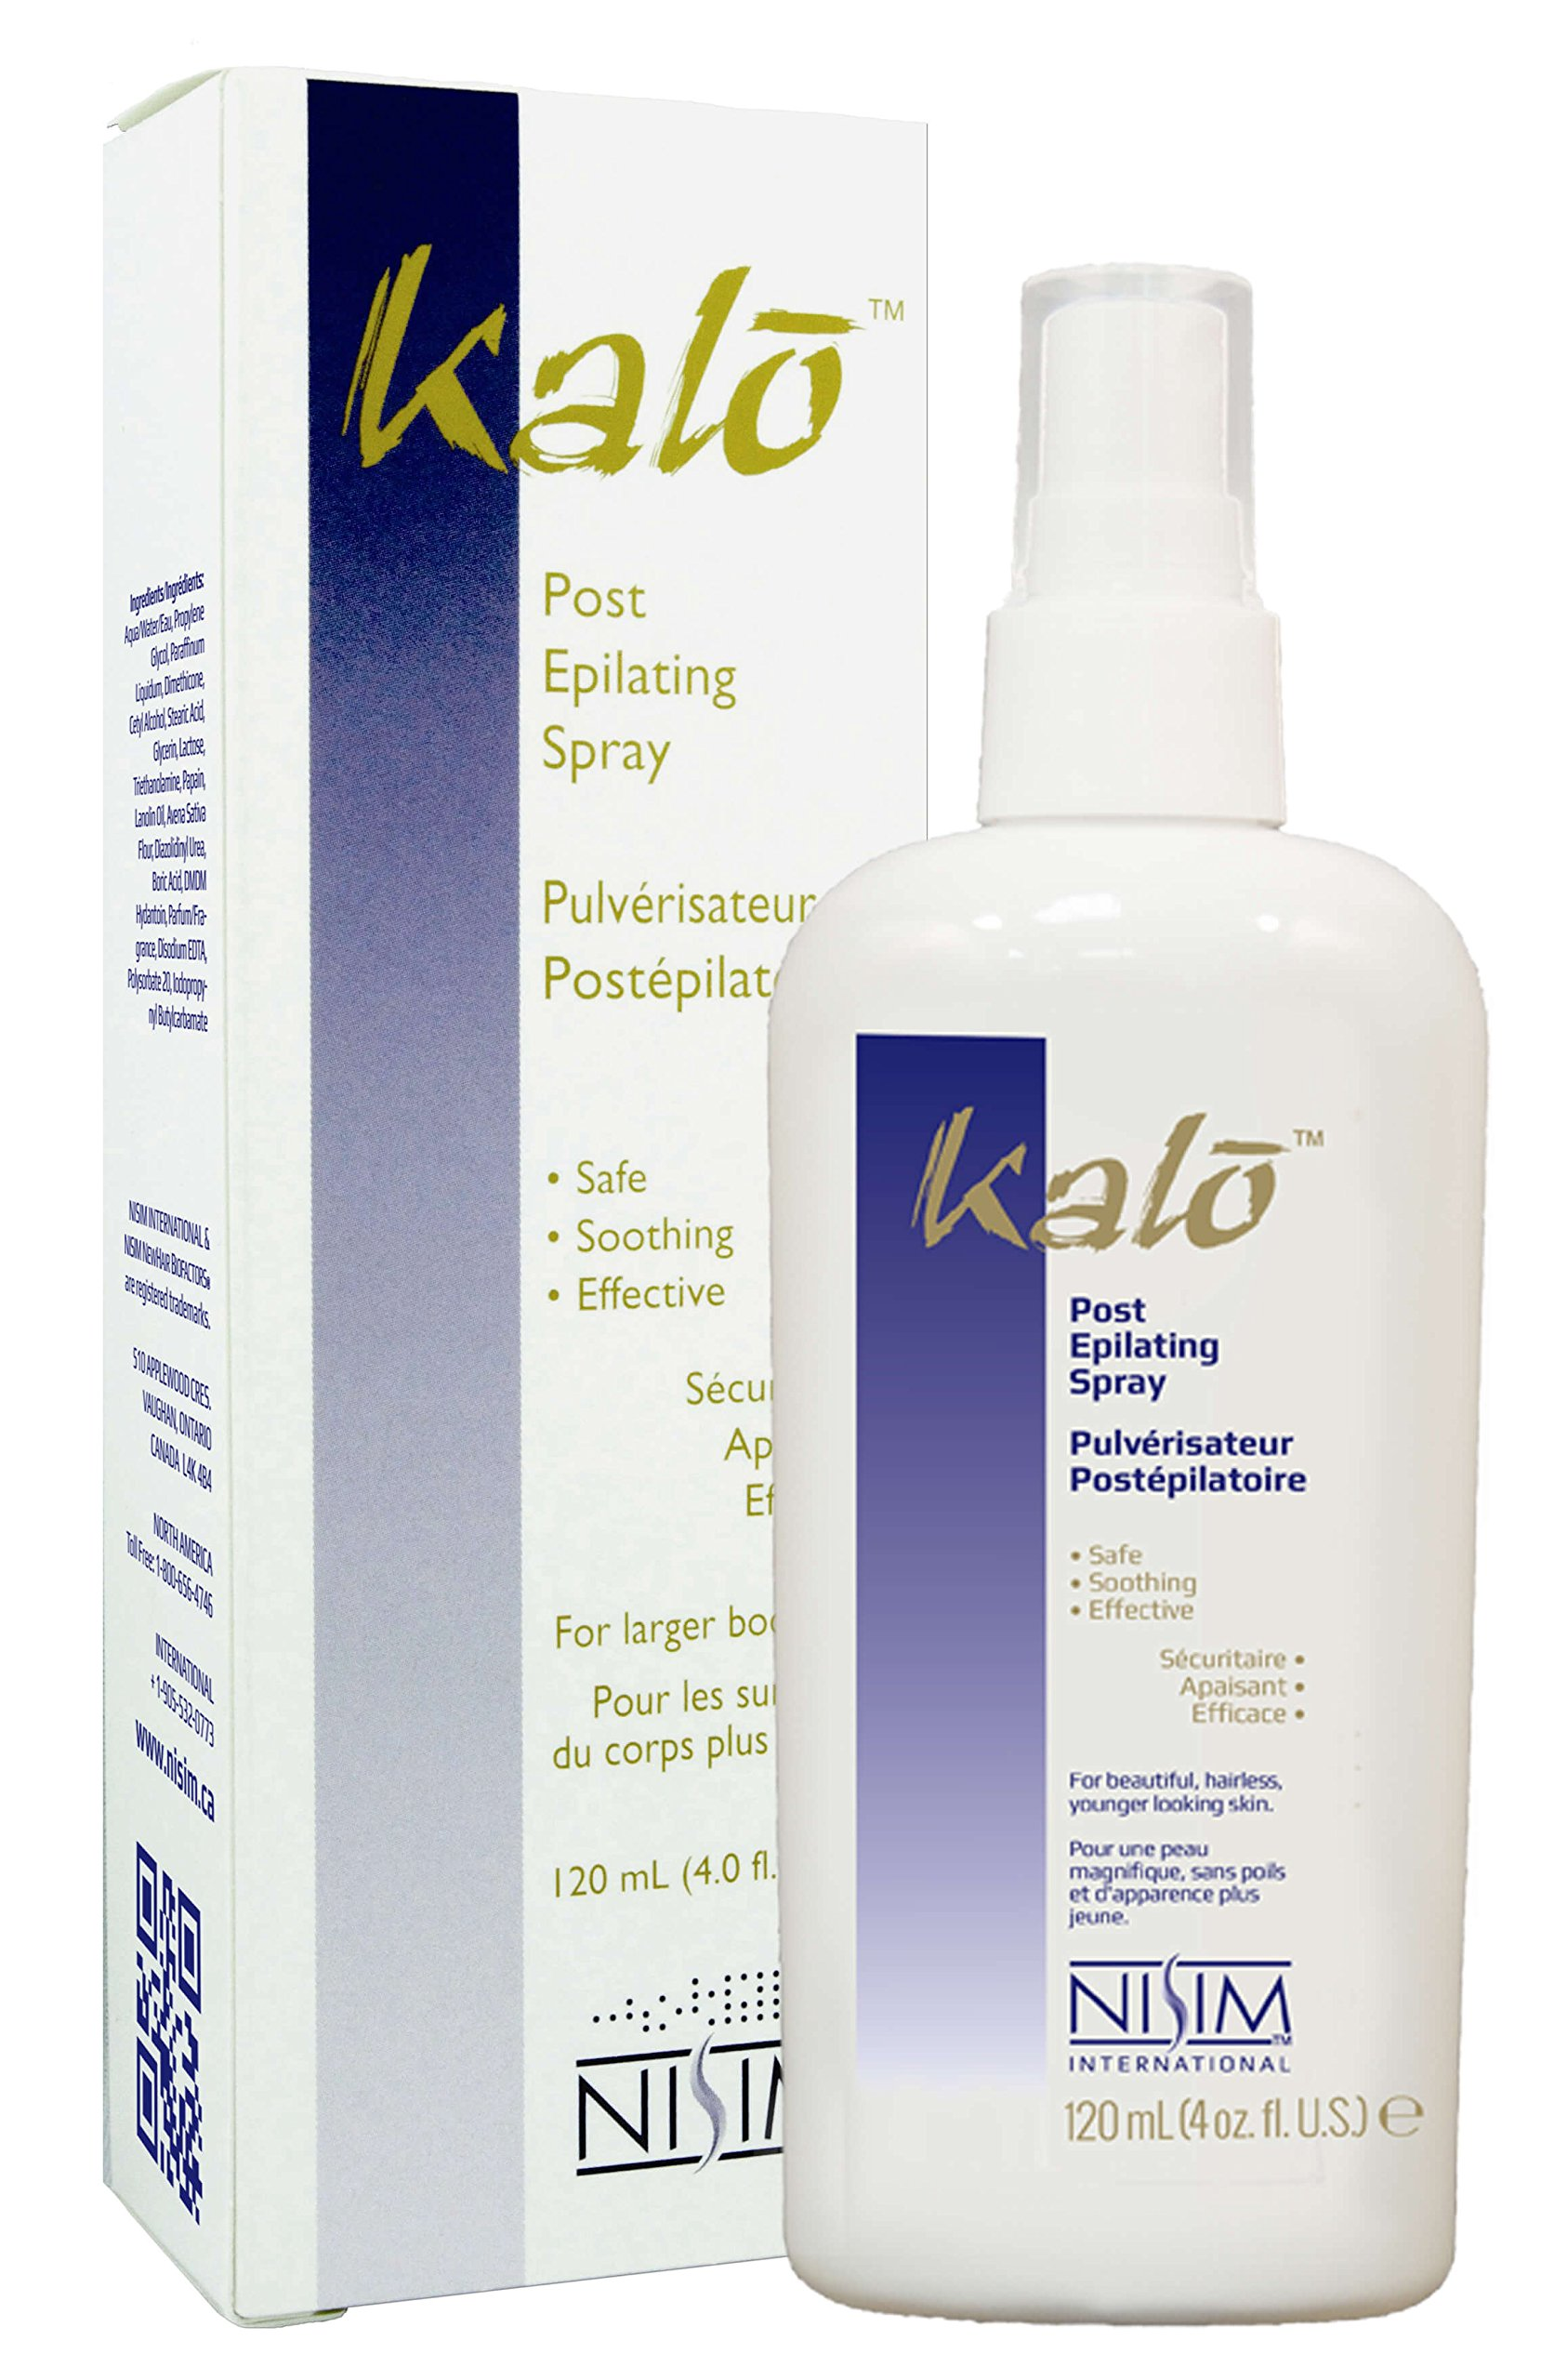 NISIM Kalo Post Epilating Spray - Hair Growth Inhibitor To Stop Unwanted Hair Growth For Both Men & Women, Safe For all External Body Parts (4 Ounce / 120 Milliliter)  by Nisim